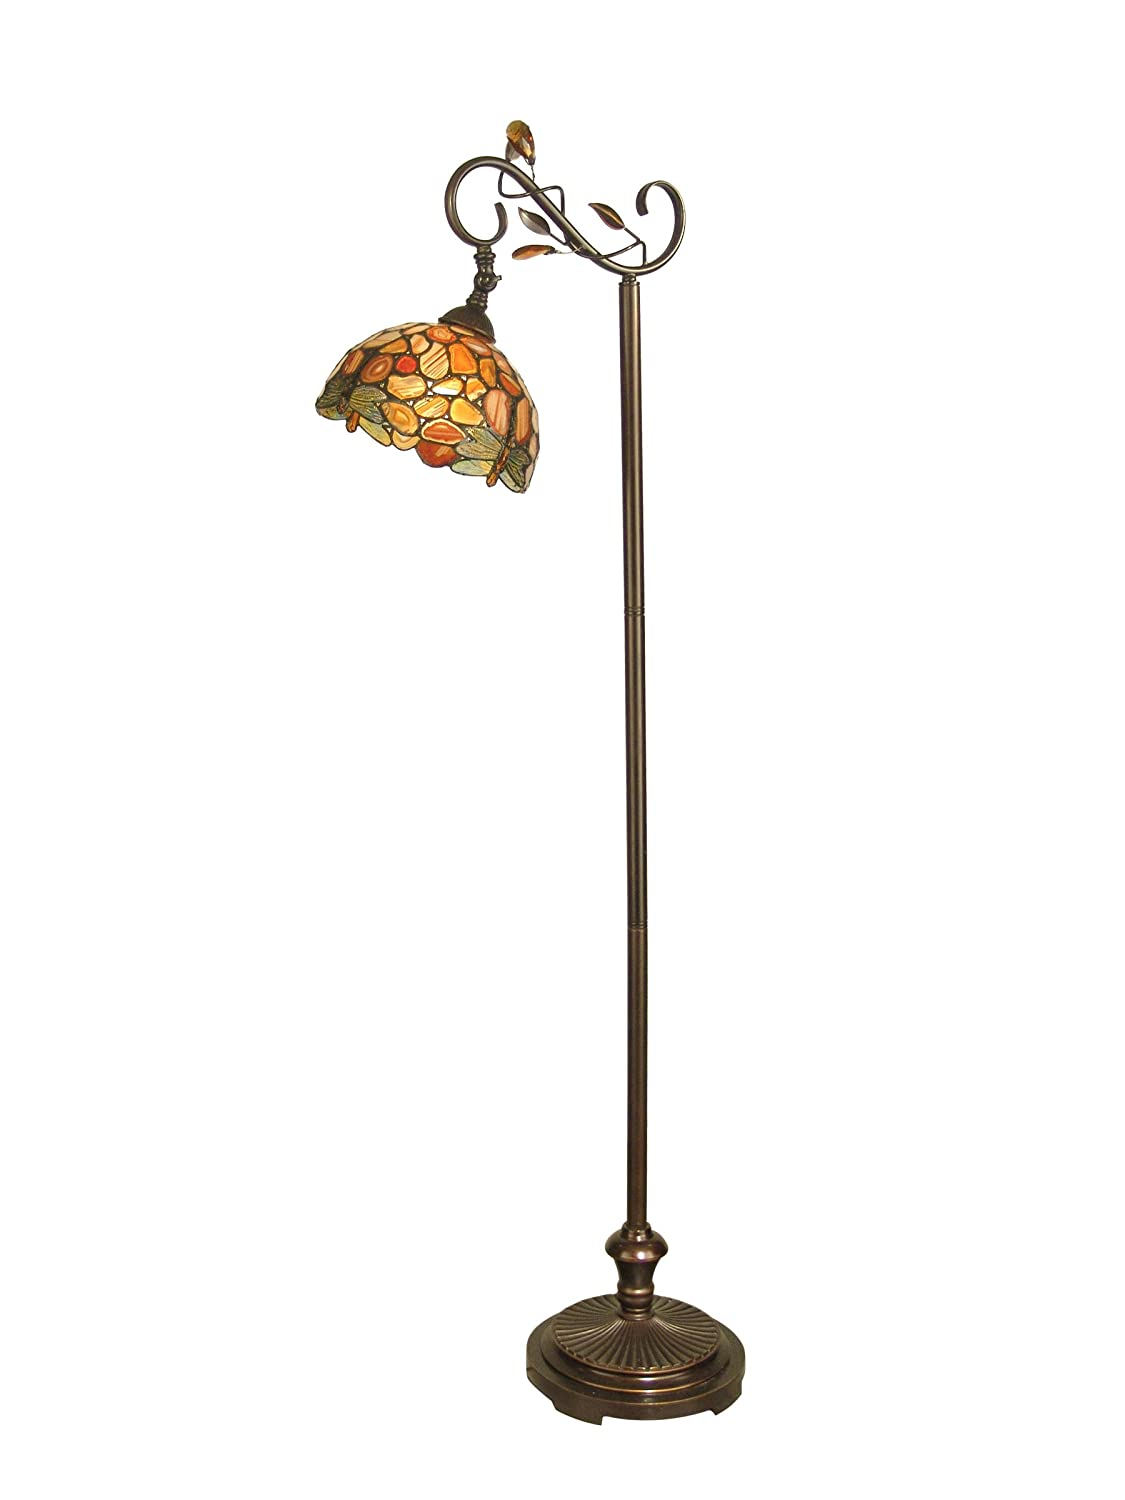 Dale Tiffany Floor Lamps Dale Tiffany Floor Lamp Homes